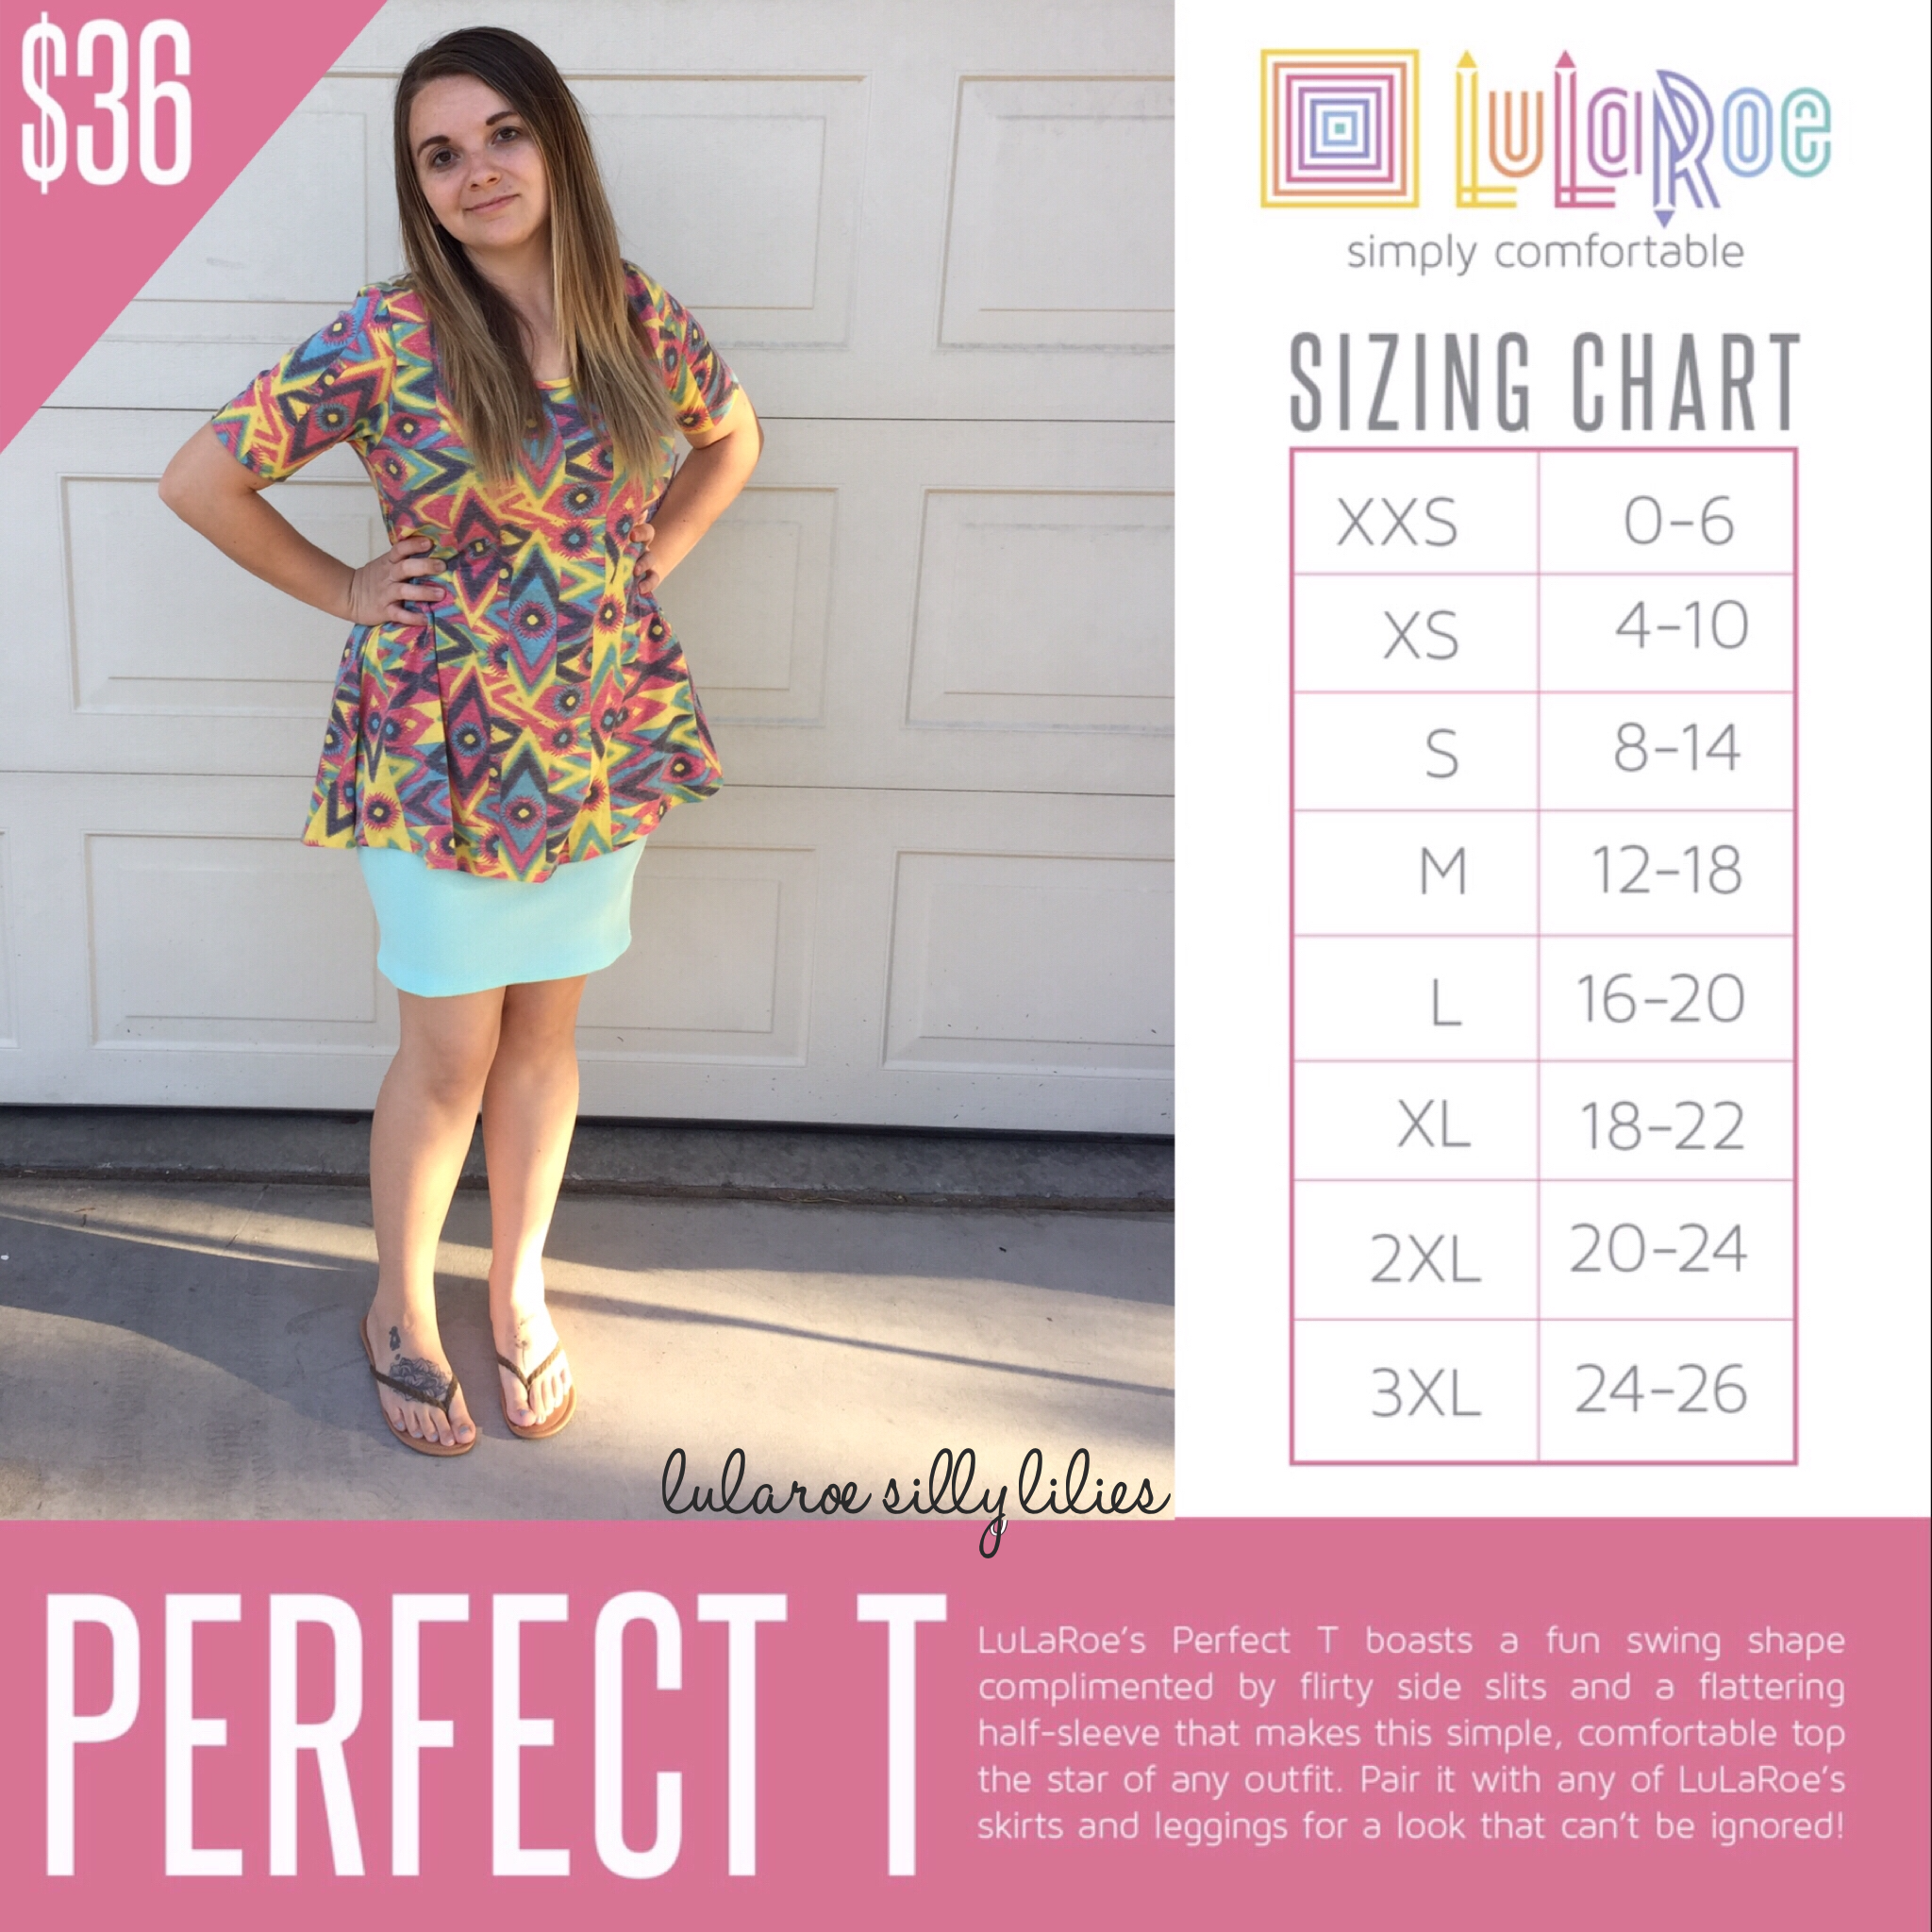 Perfect Tee Https Www Facebook Com Groups Lularoesillylilies Classic T Lularoe Sizing Flattering Tops Lularoe Classic